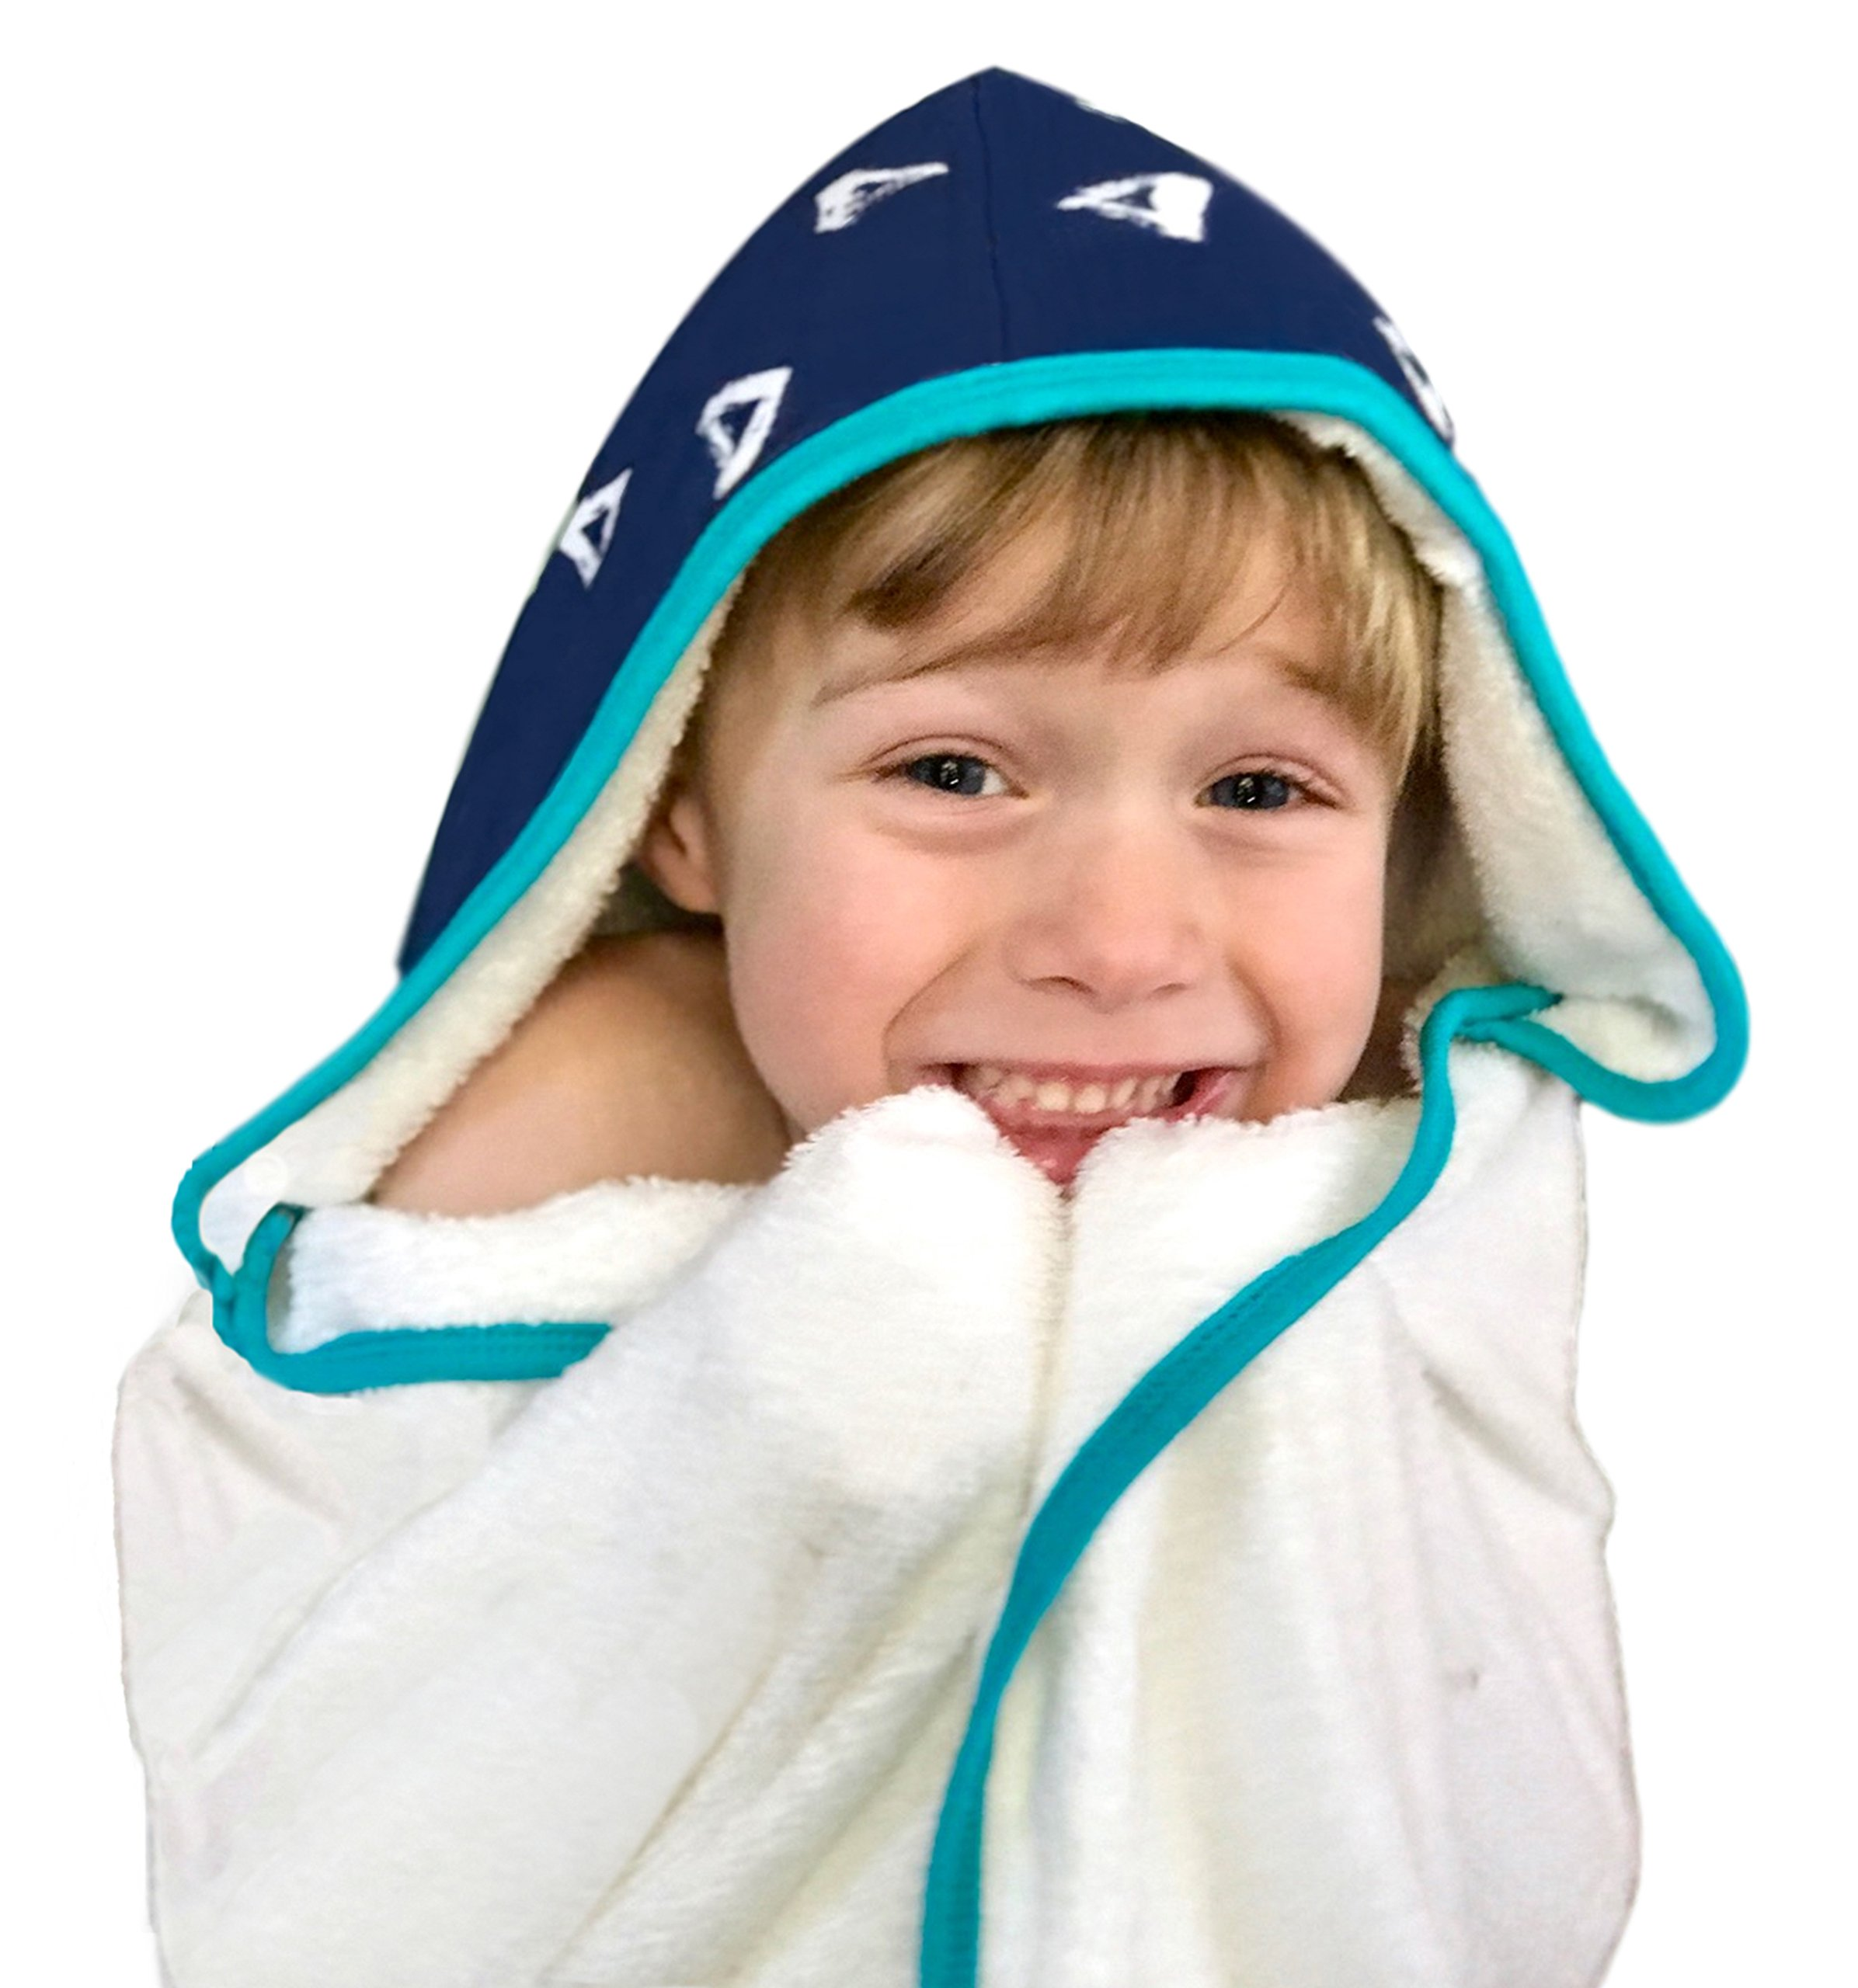 Kids Hooded Bath Towel | Extra Soft & Thick 500 GSM Bamboo Terry | Hypoallergenic & Eco-Friendly | Extra Large Toddler to Kids Bath Towel with Hood for Boys & Girls After Beach, Pool, or Swim by Land of the Wee